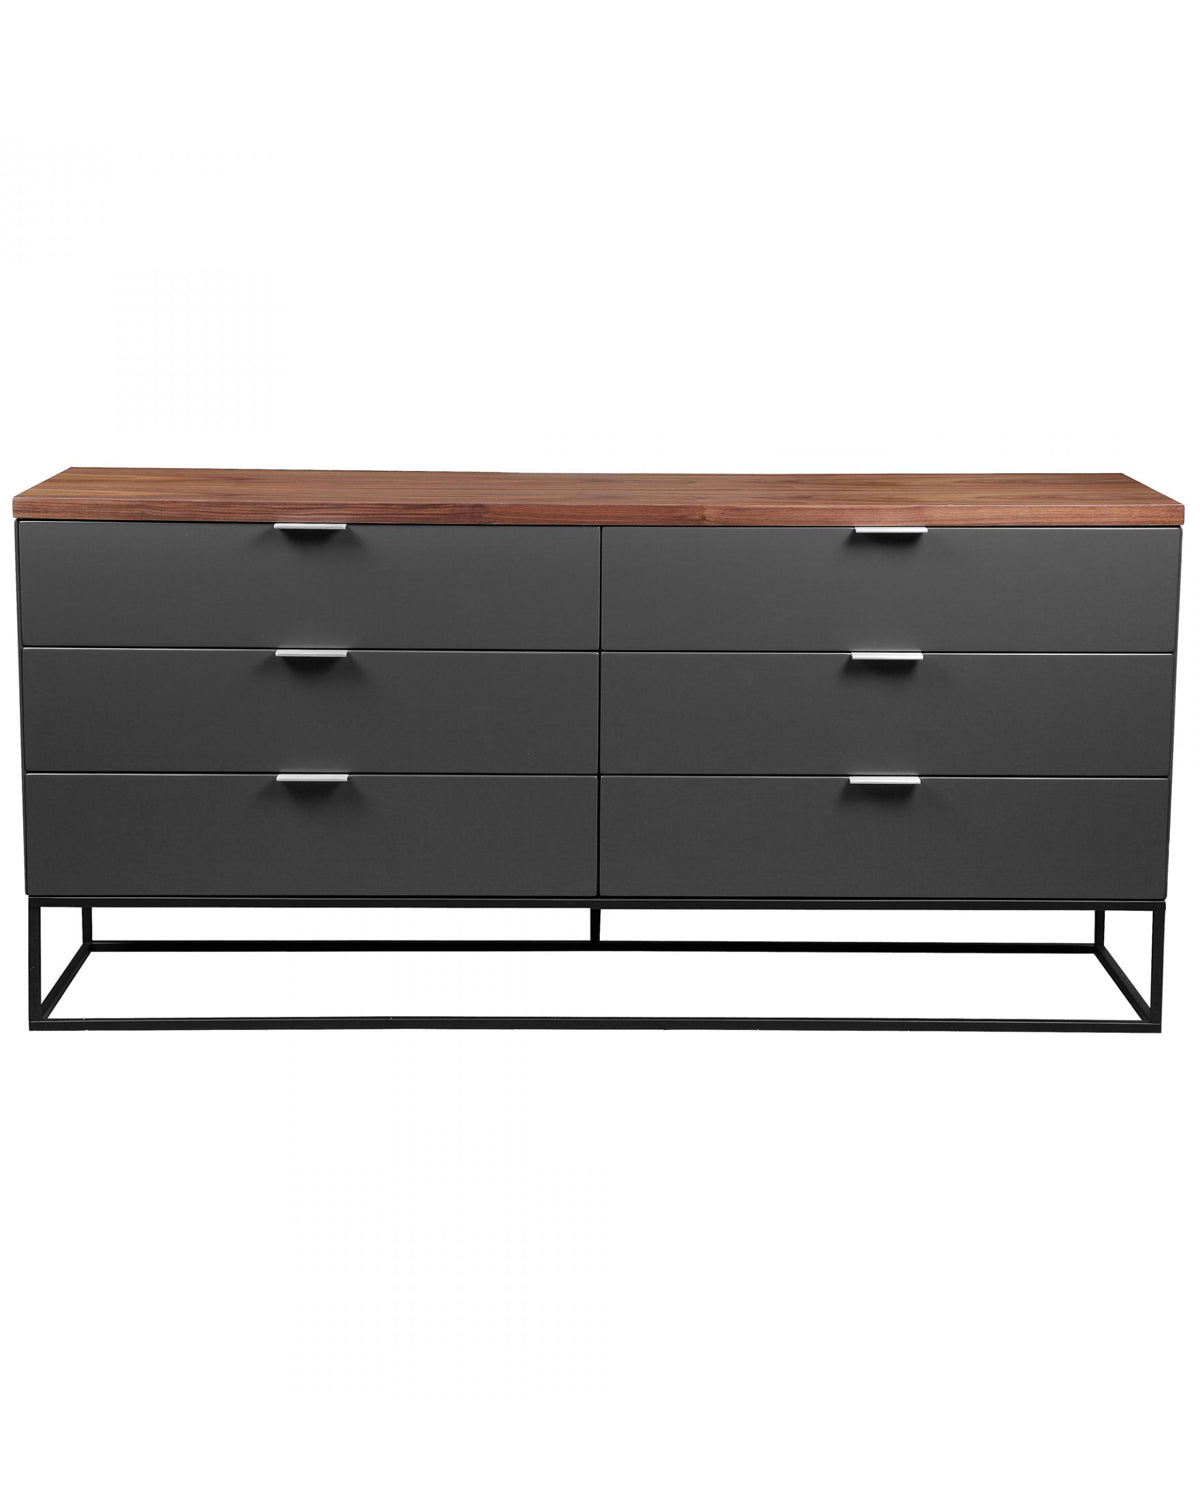 Christopher 6-Drawer Dresser